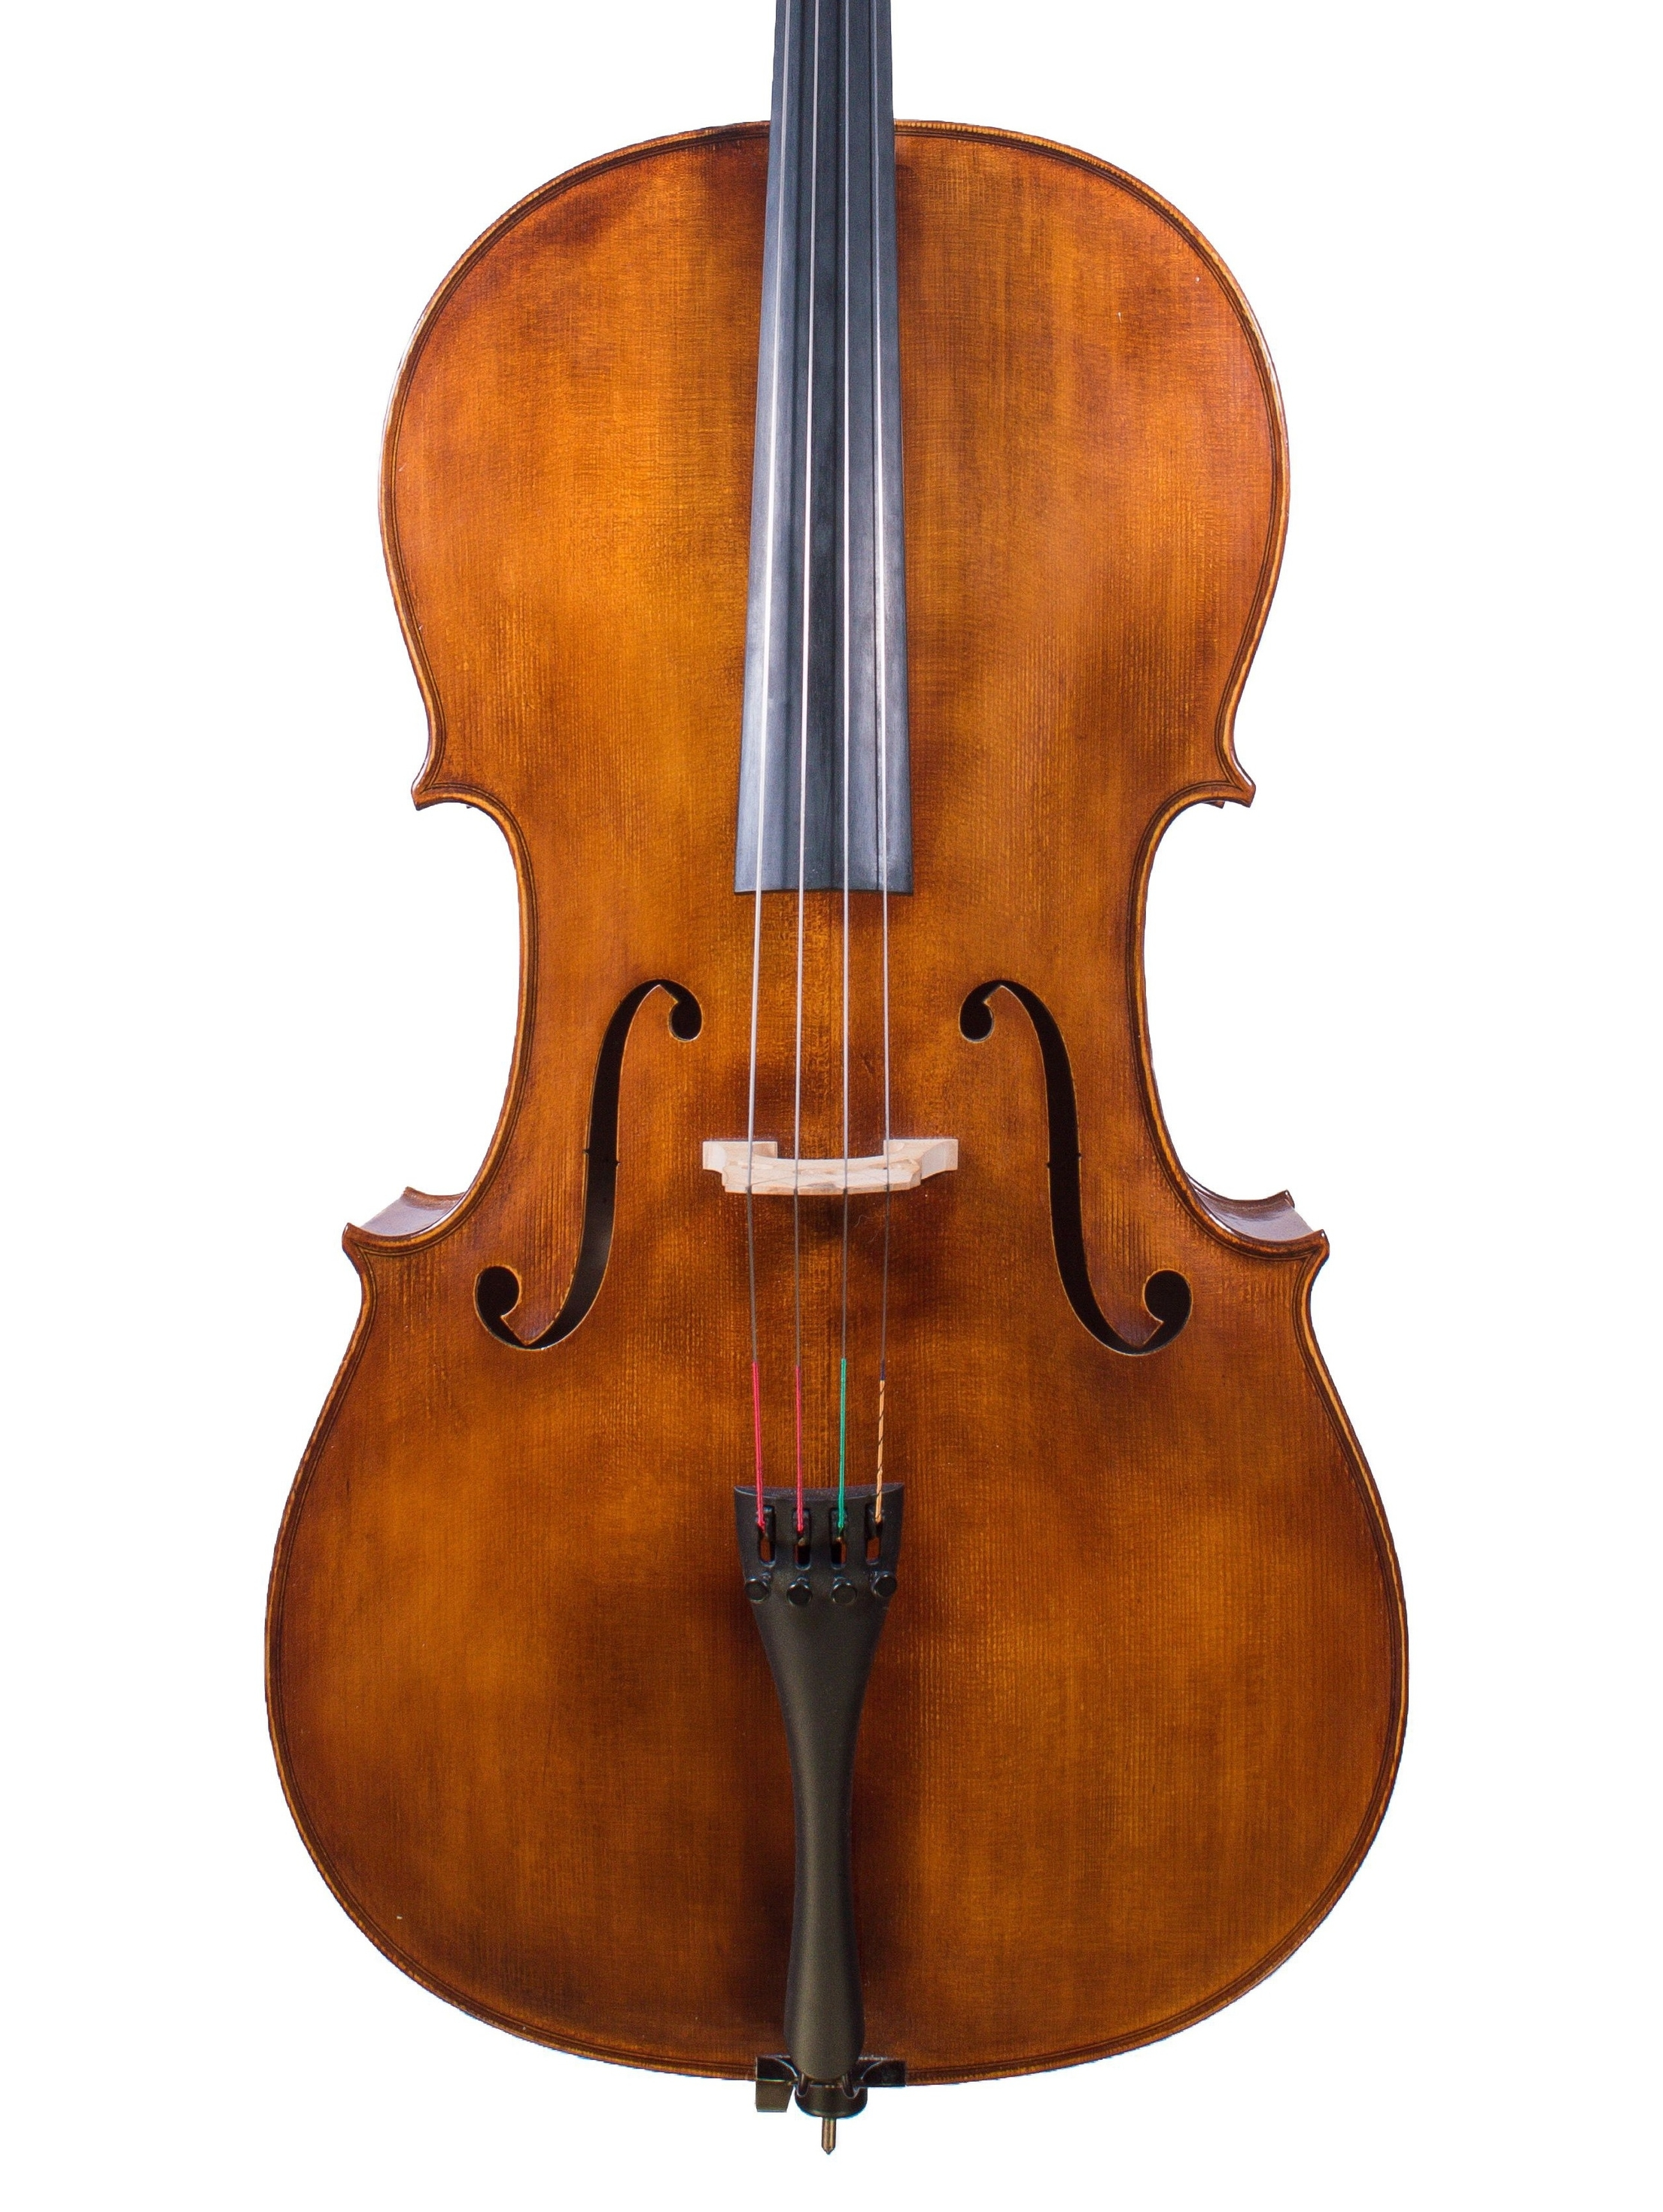 Cello by Luc Deneys, 2015